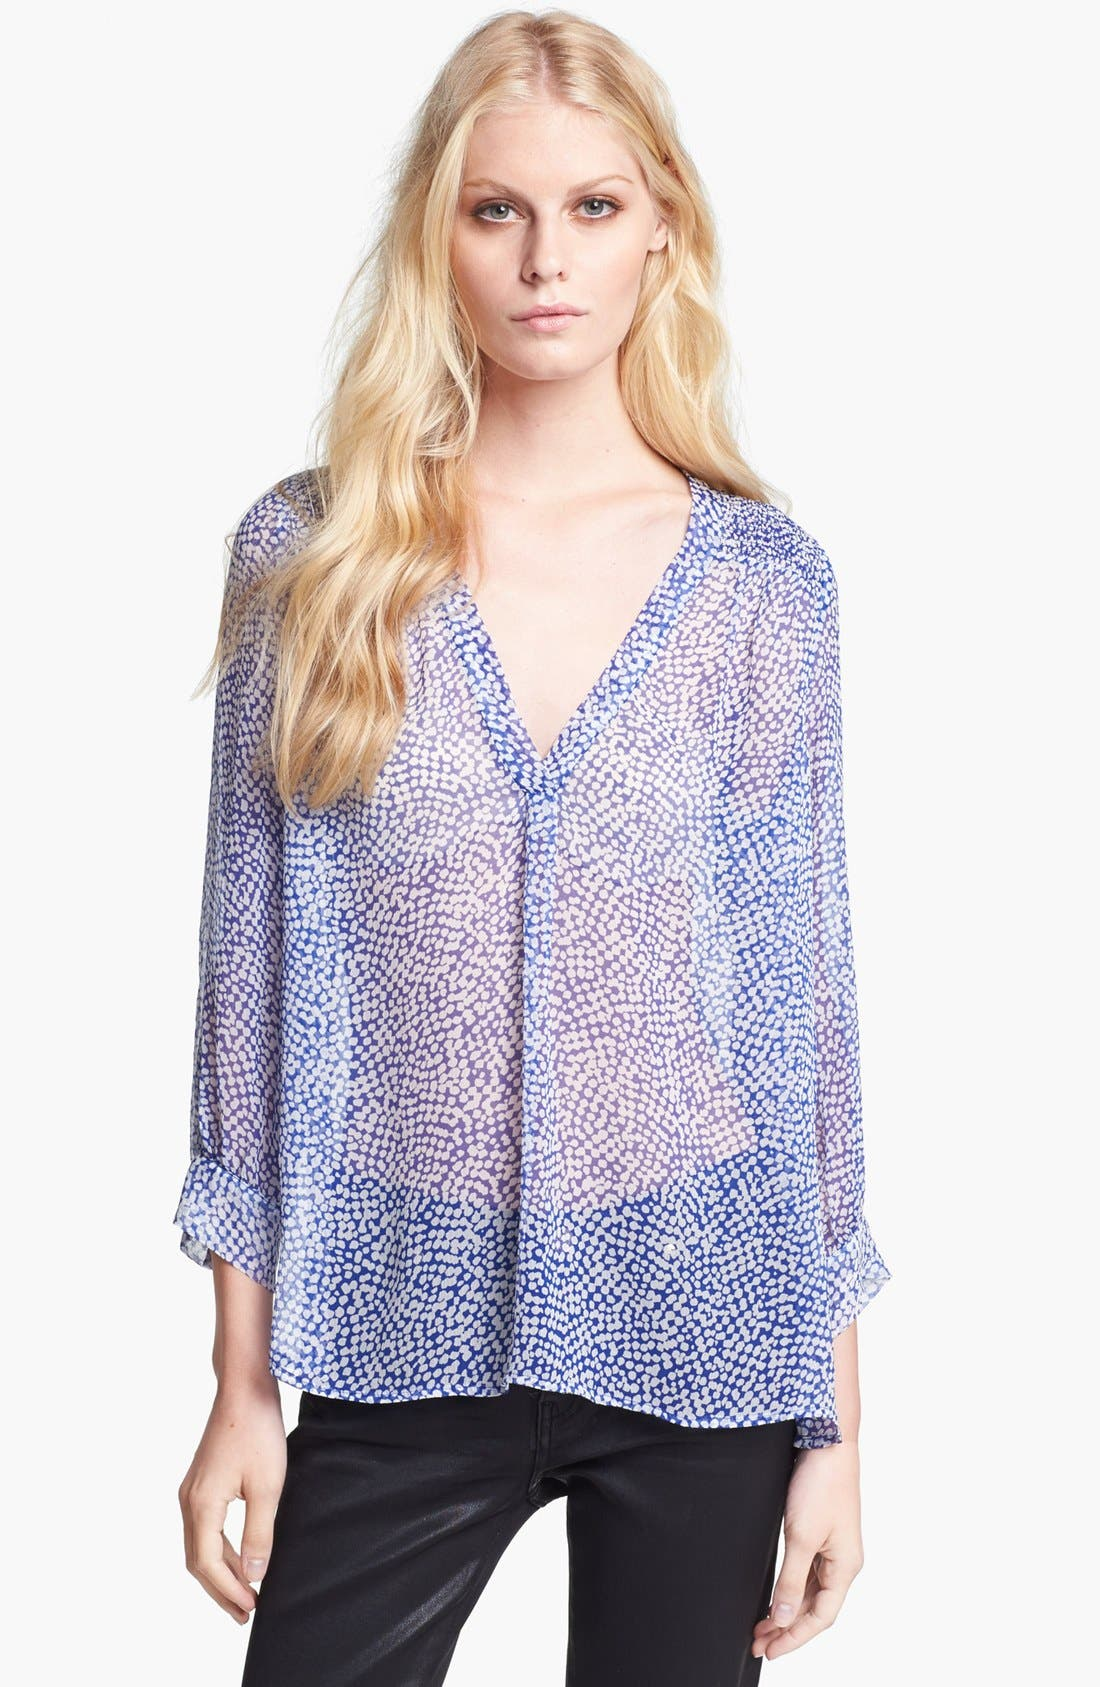 Alternate Image 1 Selected - Joie 'Aceline' Print Silk Shirt